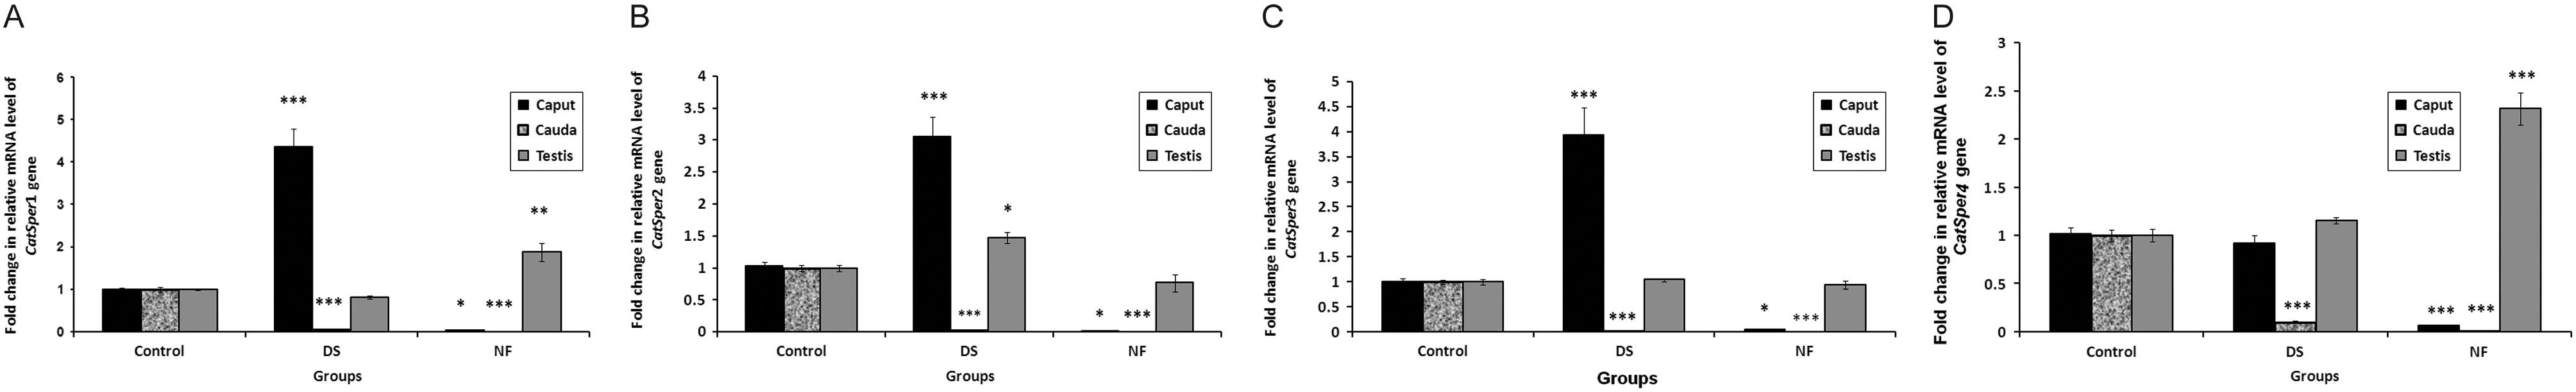 Influence Of Antifertility Agents Dutasteride And Nifedipine On Catsper Gene Level In Epididymis During Sperm Maturation In Balb C Mice In Reproduction Volume 155 Issue 4 2018